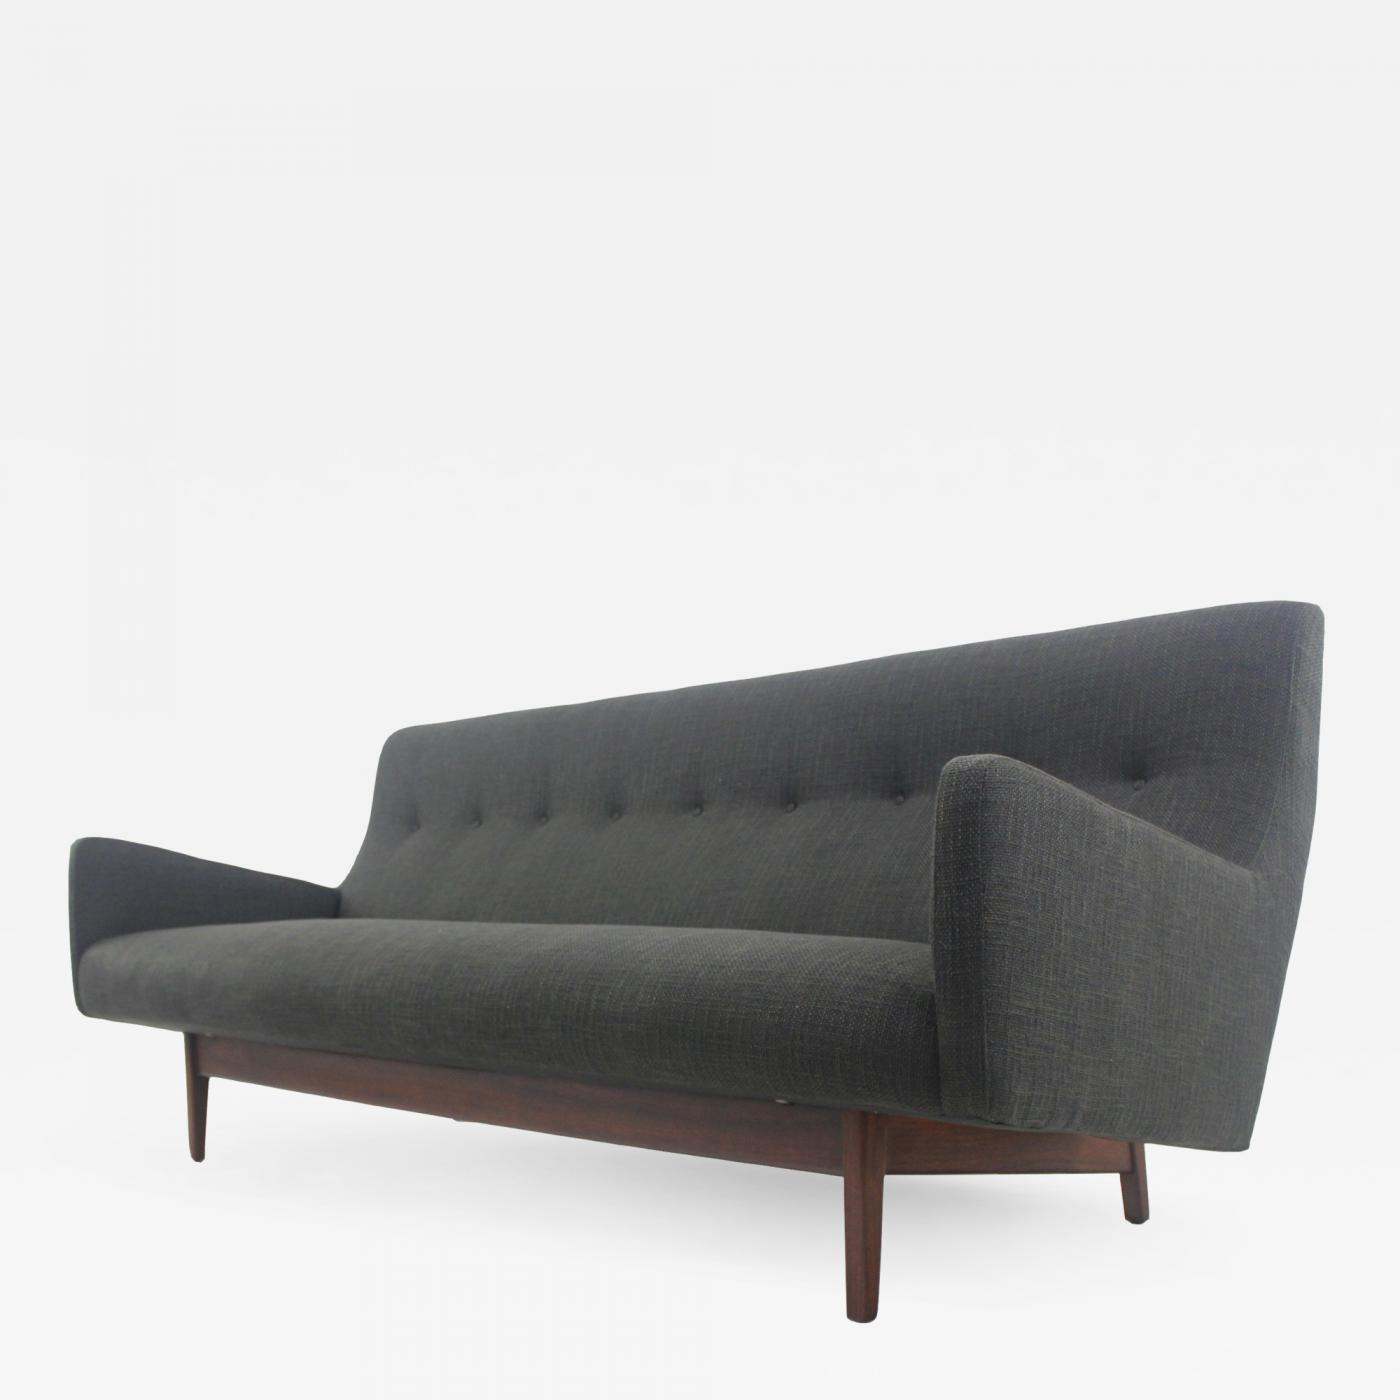 Modern Couch Jens Risom Sleek High Back Scandinavian Modern Sofa Designed By Jens Risom